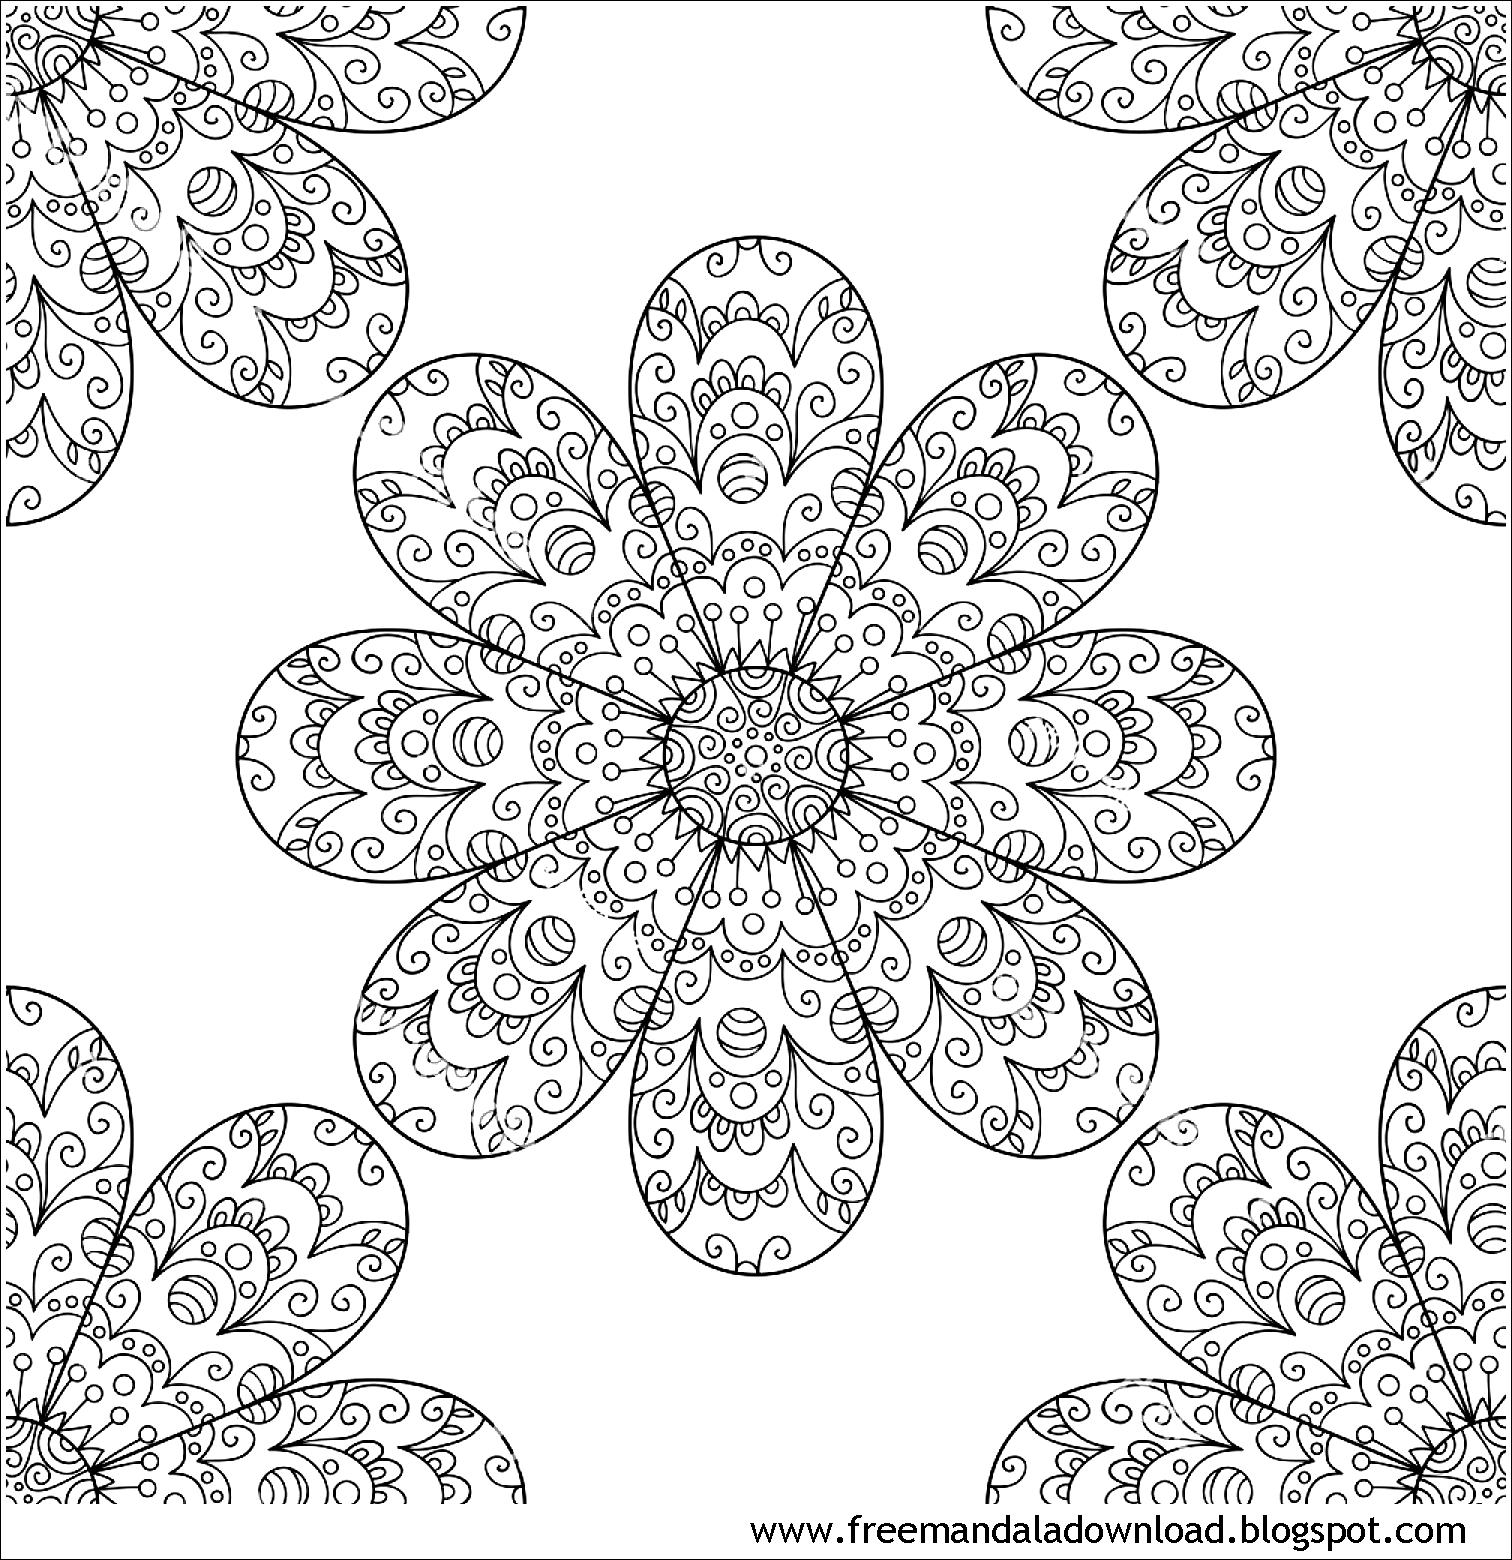 Really Hard Mandala Coloring Pages | Abstract coloring pages ... | 1560x1512